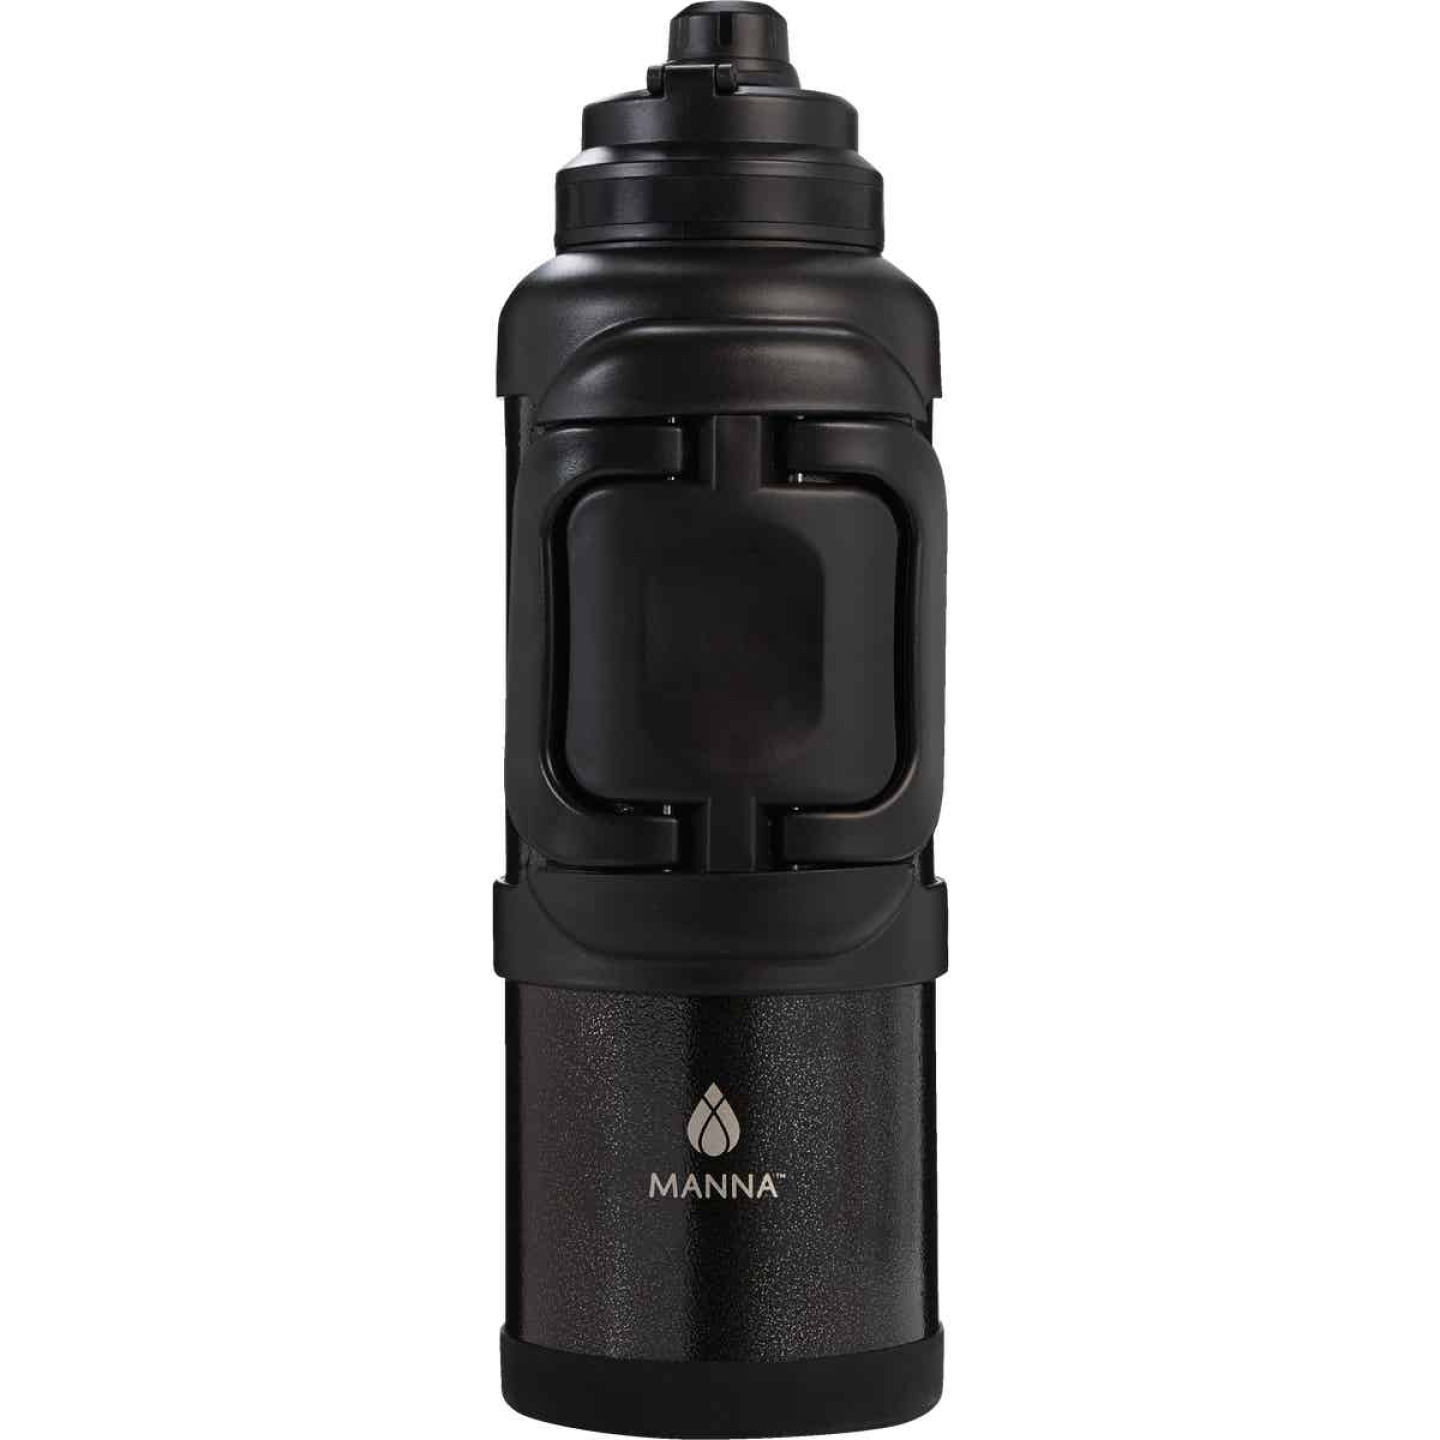 Manna Titan Onyx Vacuum Insulated Bottle Image 1